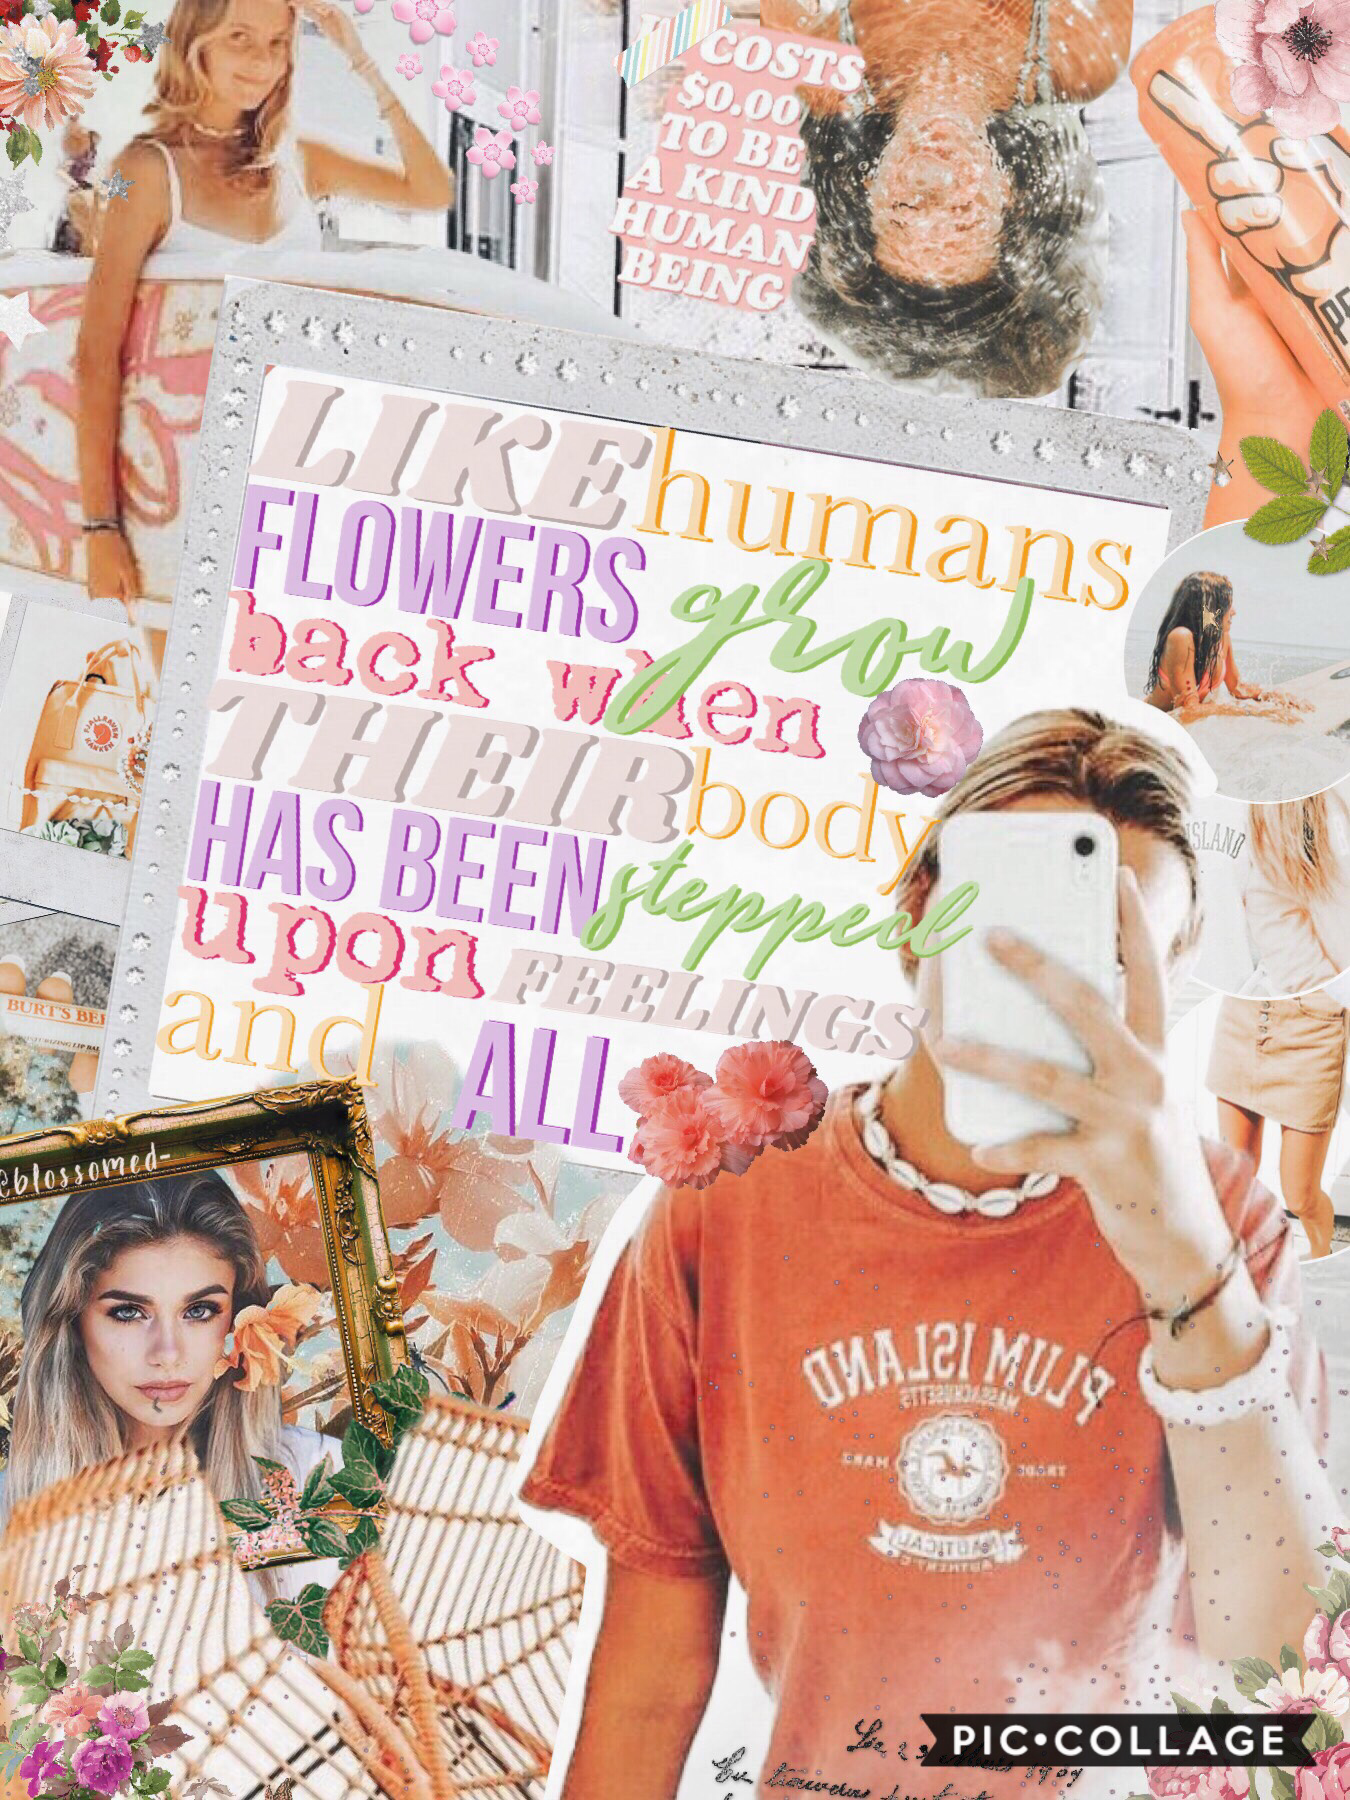 hiya guys! 🌸 so how is everyone? I'm just super upset that my collages have been deleted😣 but otherwise life's been good so far 🐝 ✨ QOTD: what's your favourite hobby? AOTD: probably pc and reading🐚